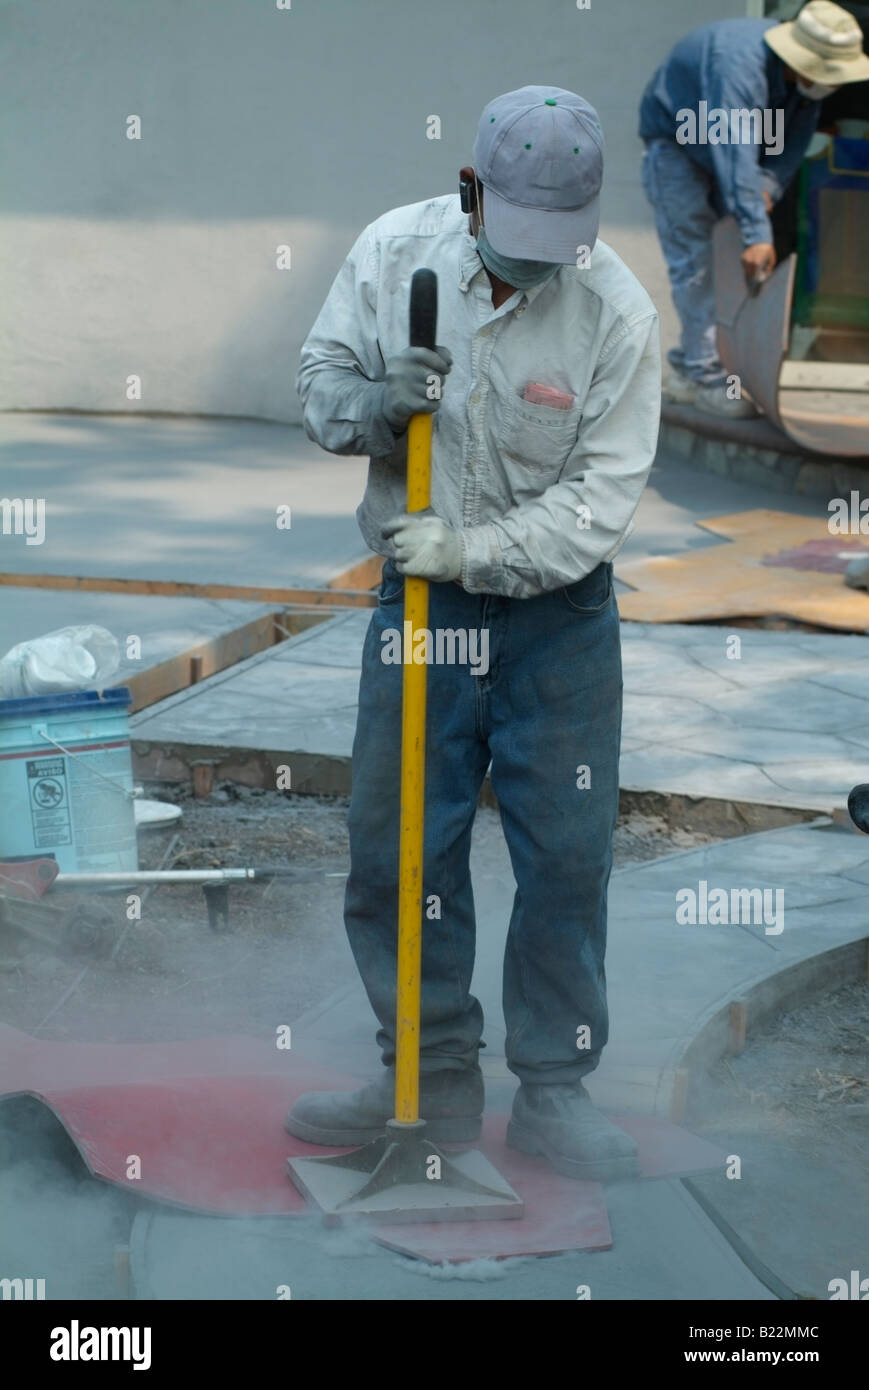 Workman stamping a texture into fresh concrete during construction of a patio in the backyard of a private home Stock Photo